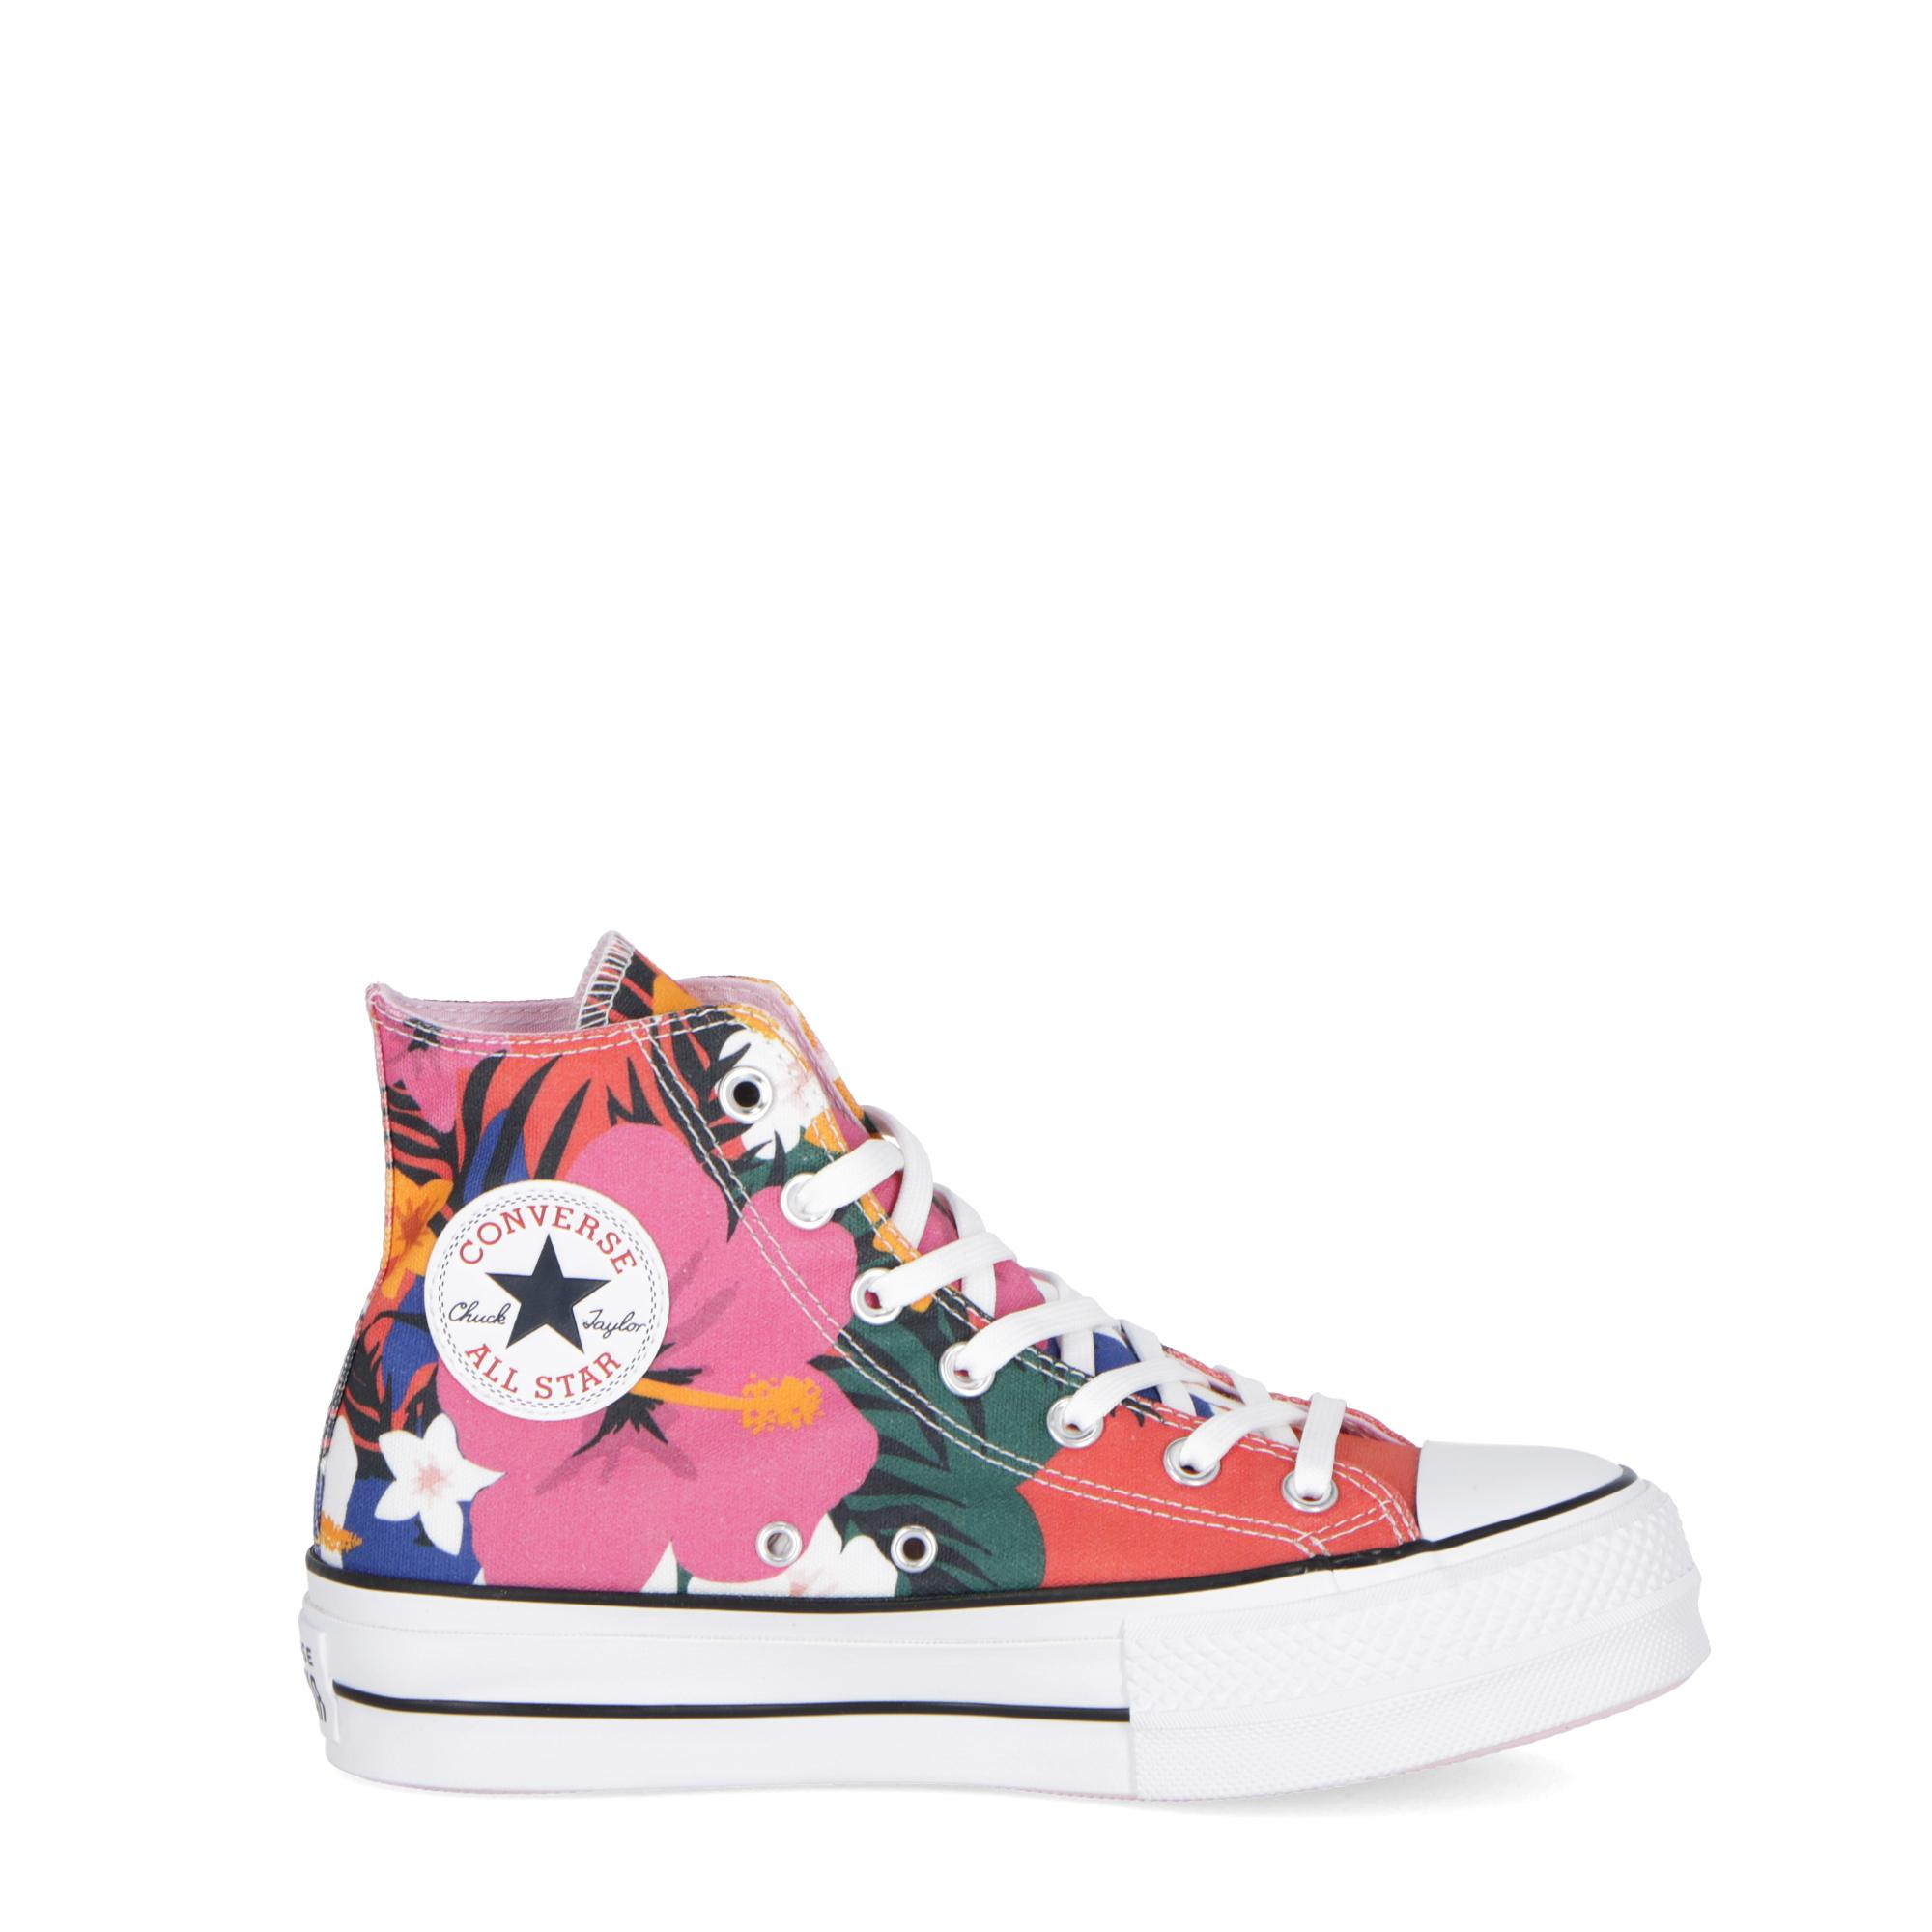 6d40aaa68957 Converse Chuck Taylor All Stars Lift Hi Strawberry Jam pink white ...